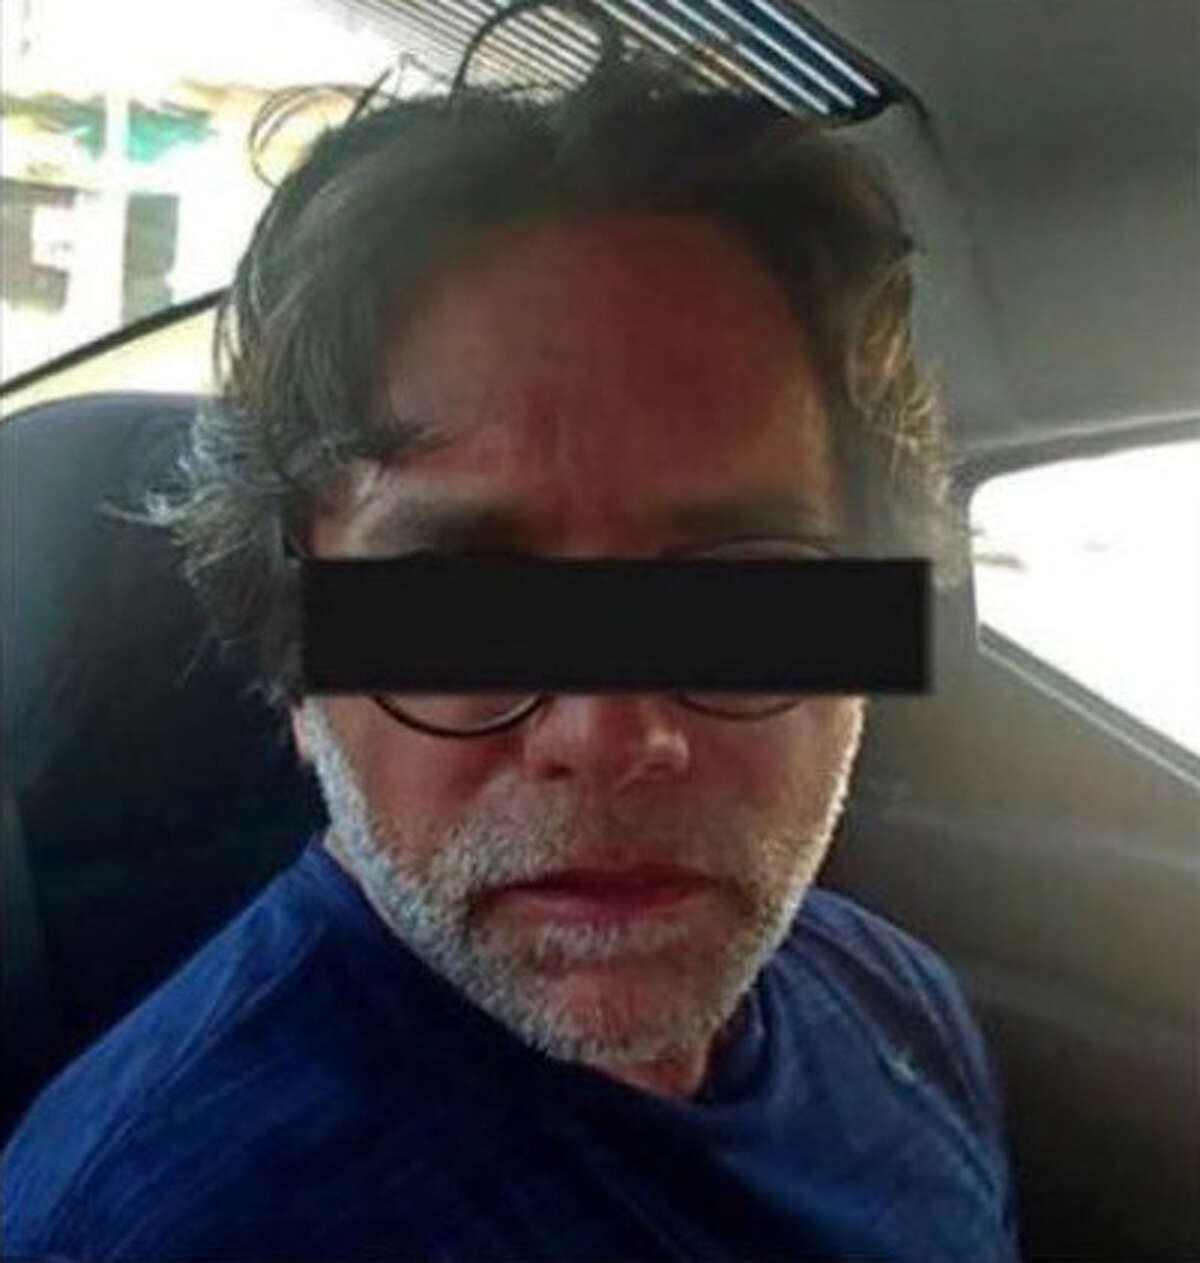 NXIVM co-founder Keith Raniere was picked up in Mexico in March 2018, extradited to the U.S. and has remained jailed. His trial on multiple counts including racketeering, sex trafficking and forced labor began May 7 and ended with a federal jury finding him guilty of all counts. He faces life in prison. Read more.